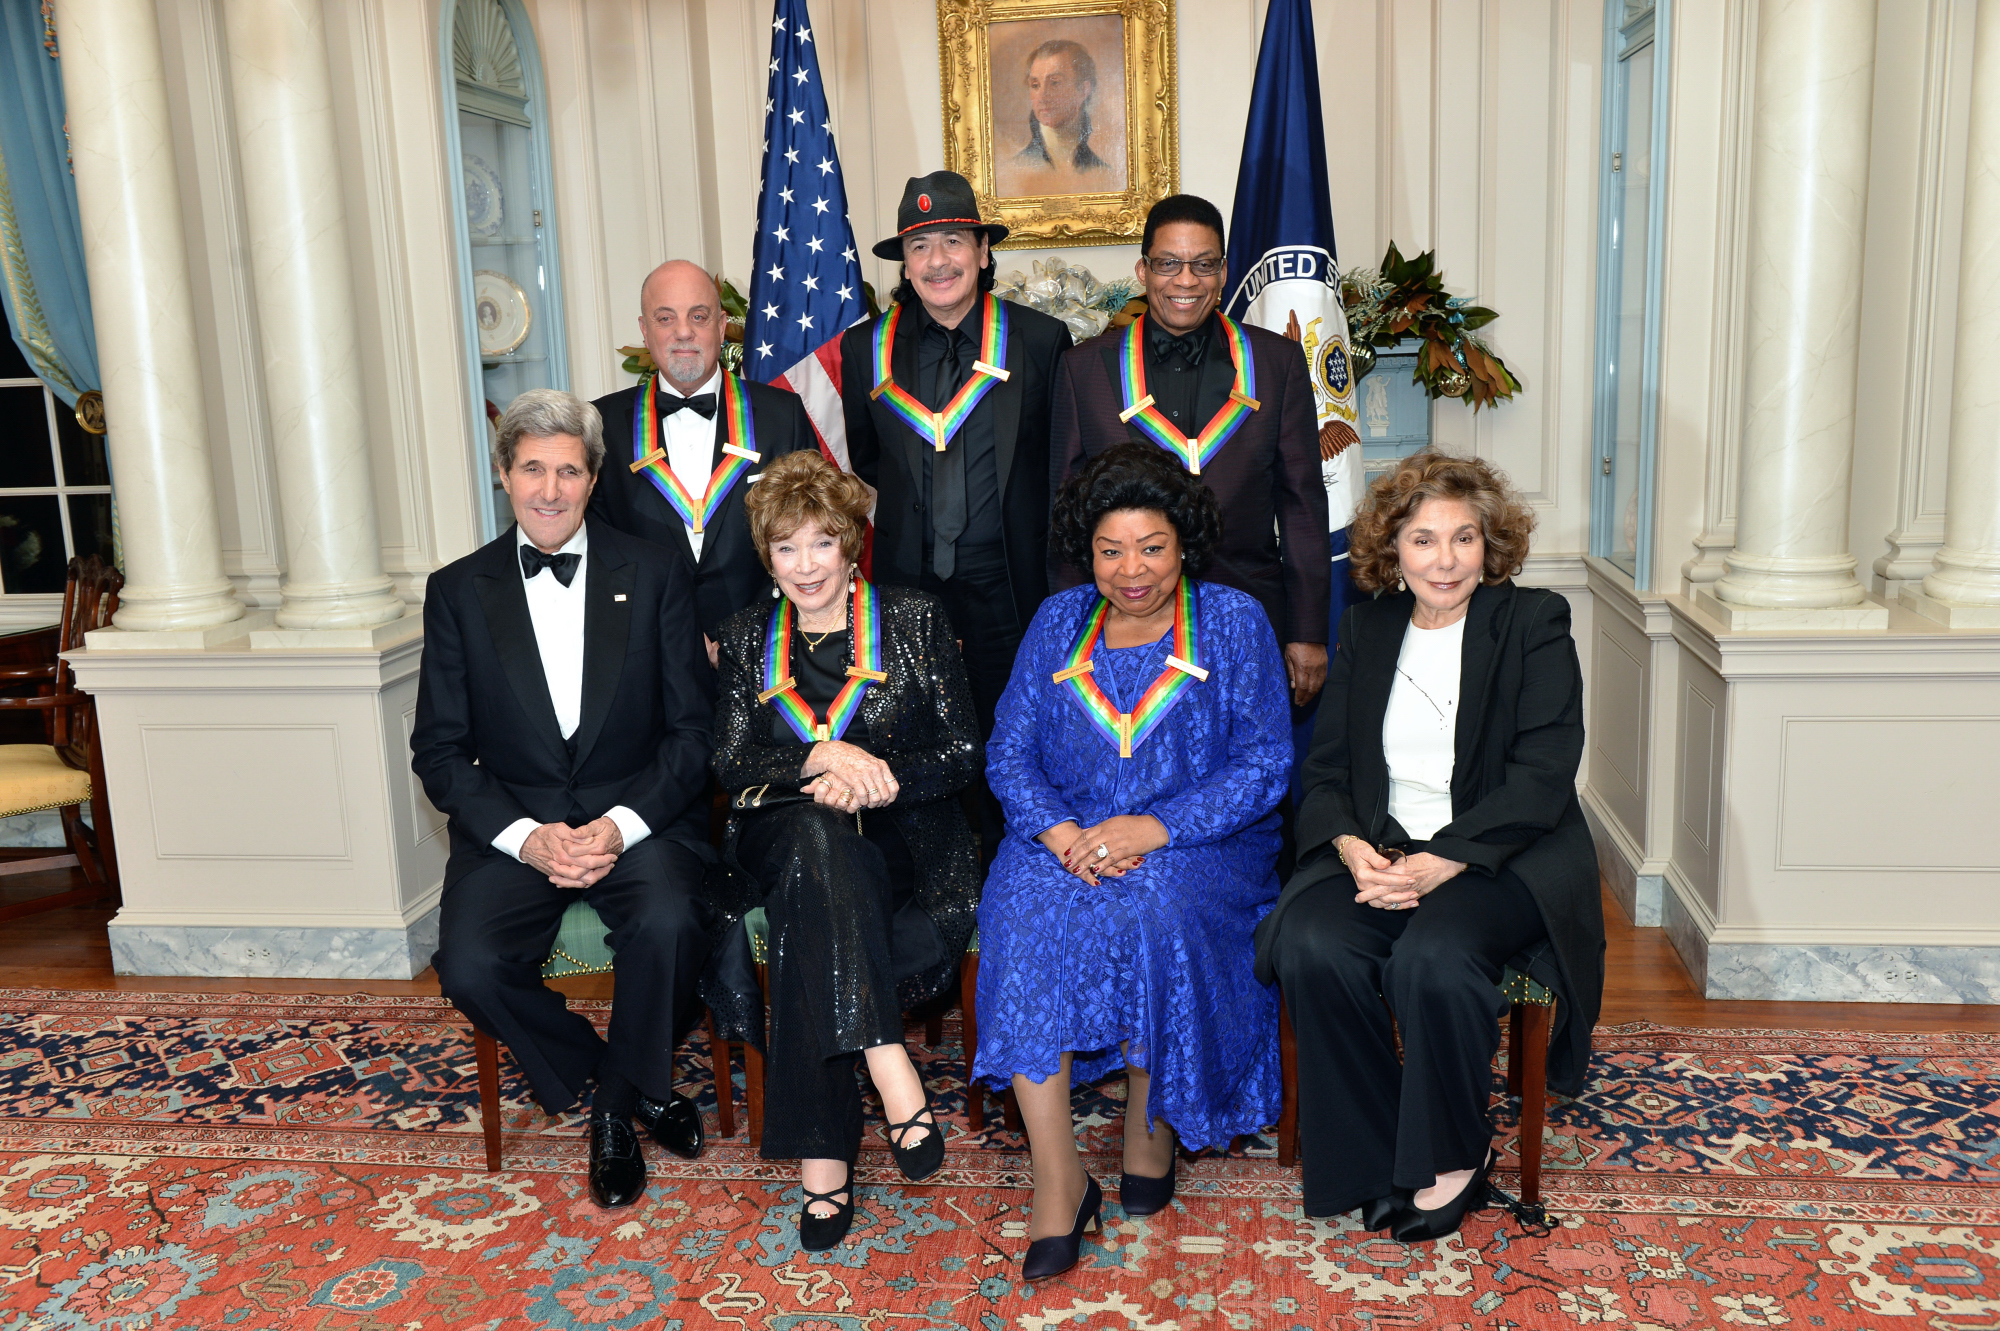 Billy Joel in a group picture with his fellow 2013 Kennedy Center honorees.